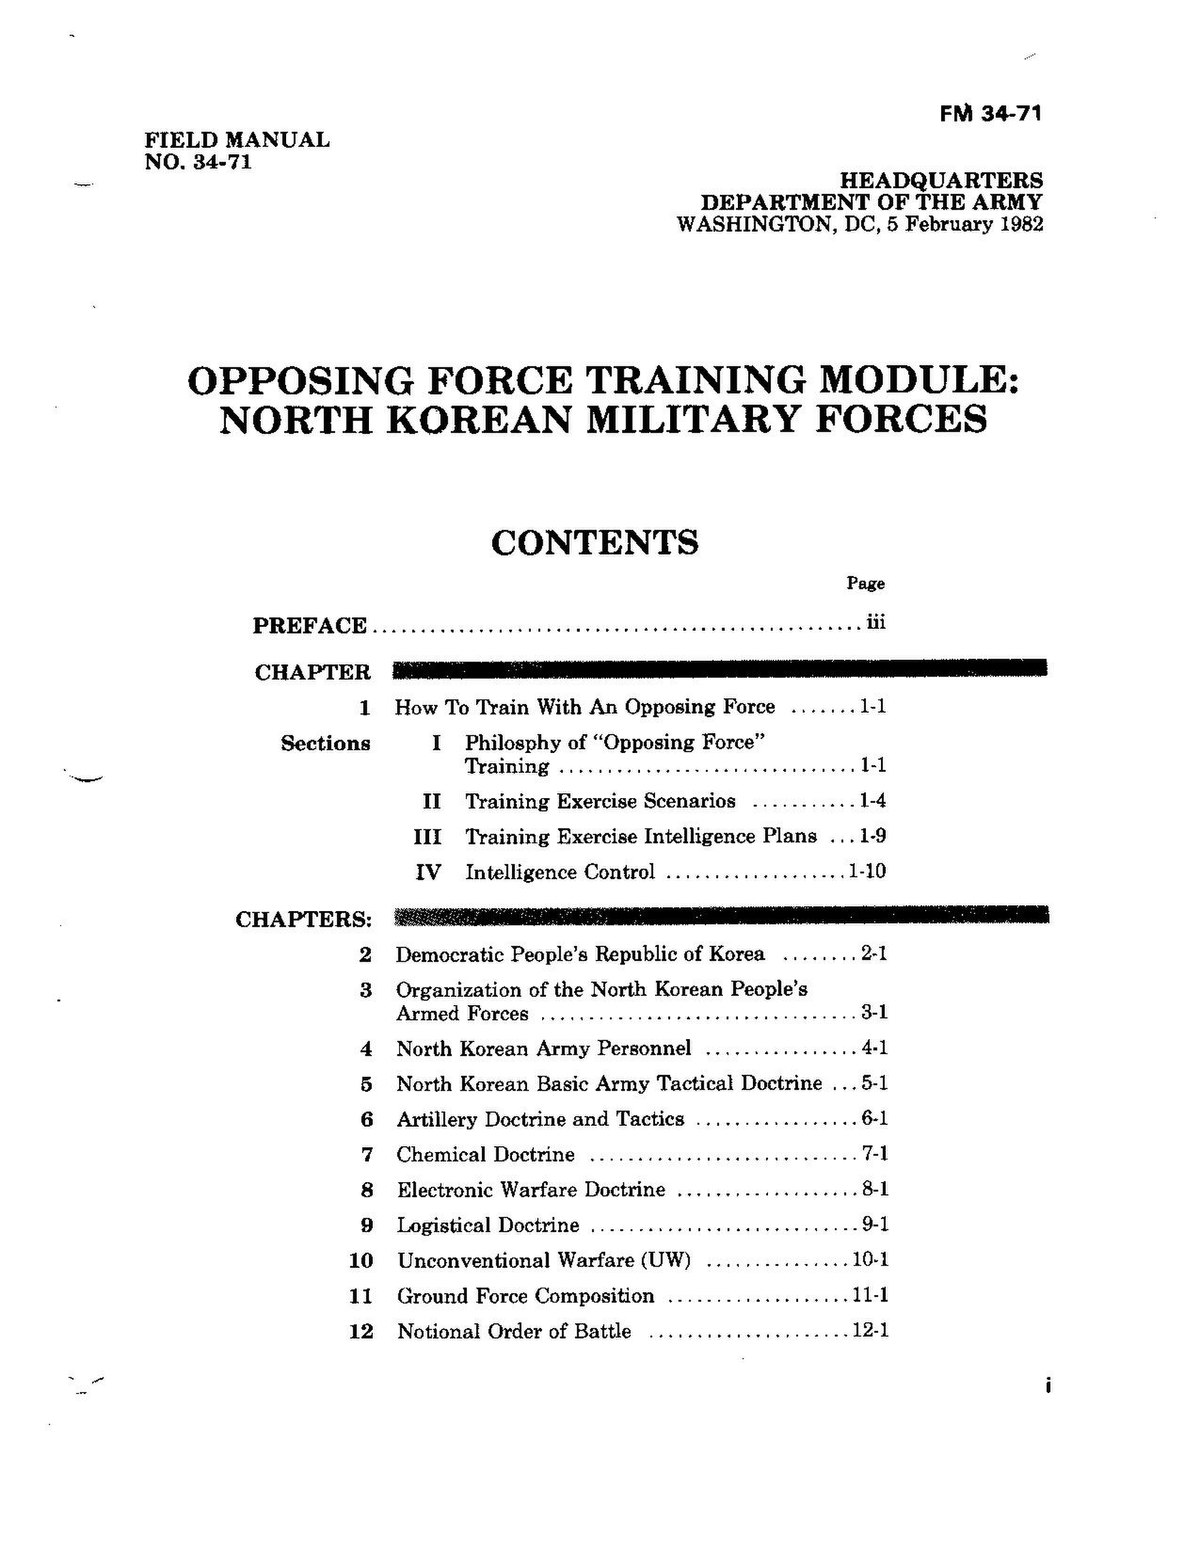 File:Opposing Force Training Module, North Korean Military Forces ...